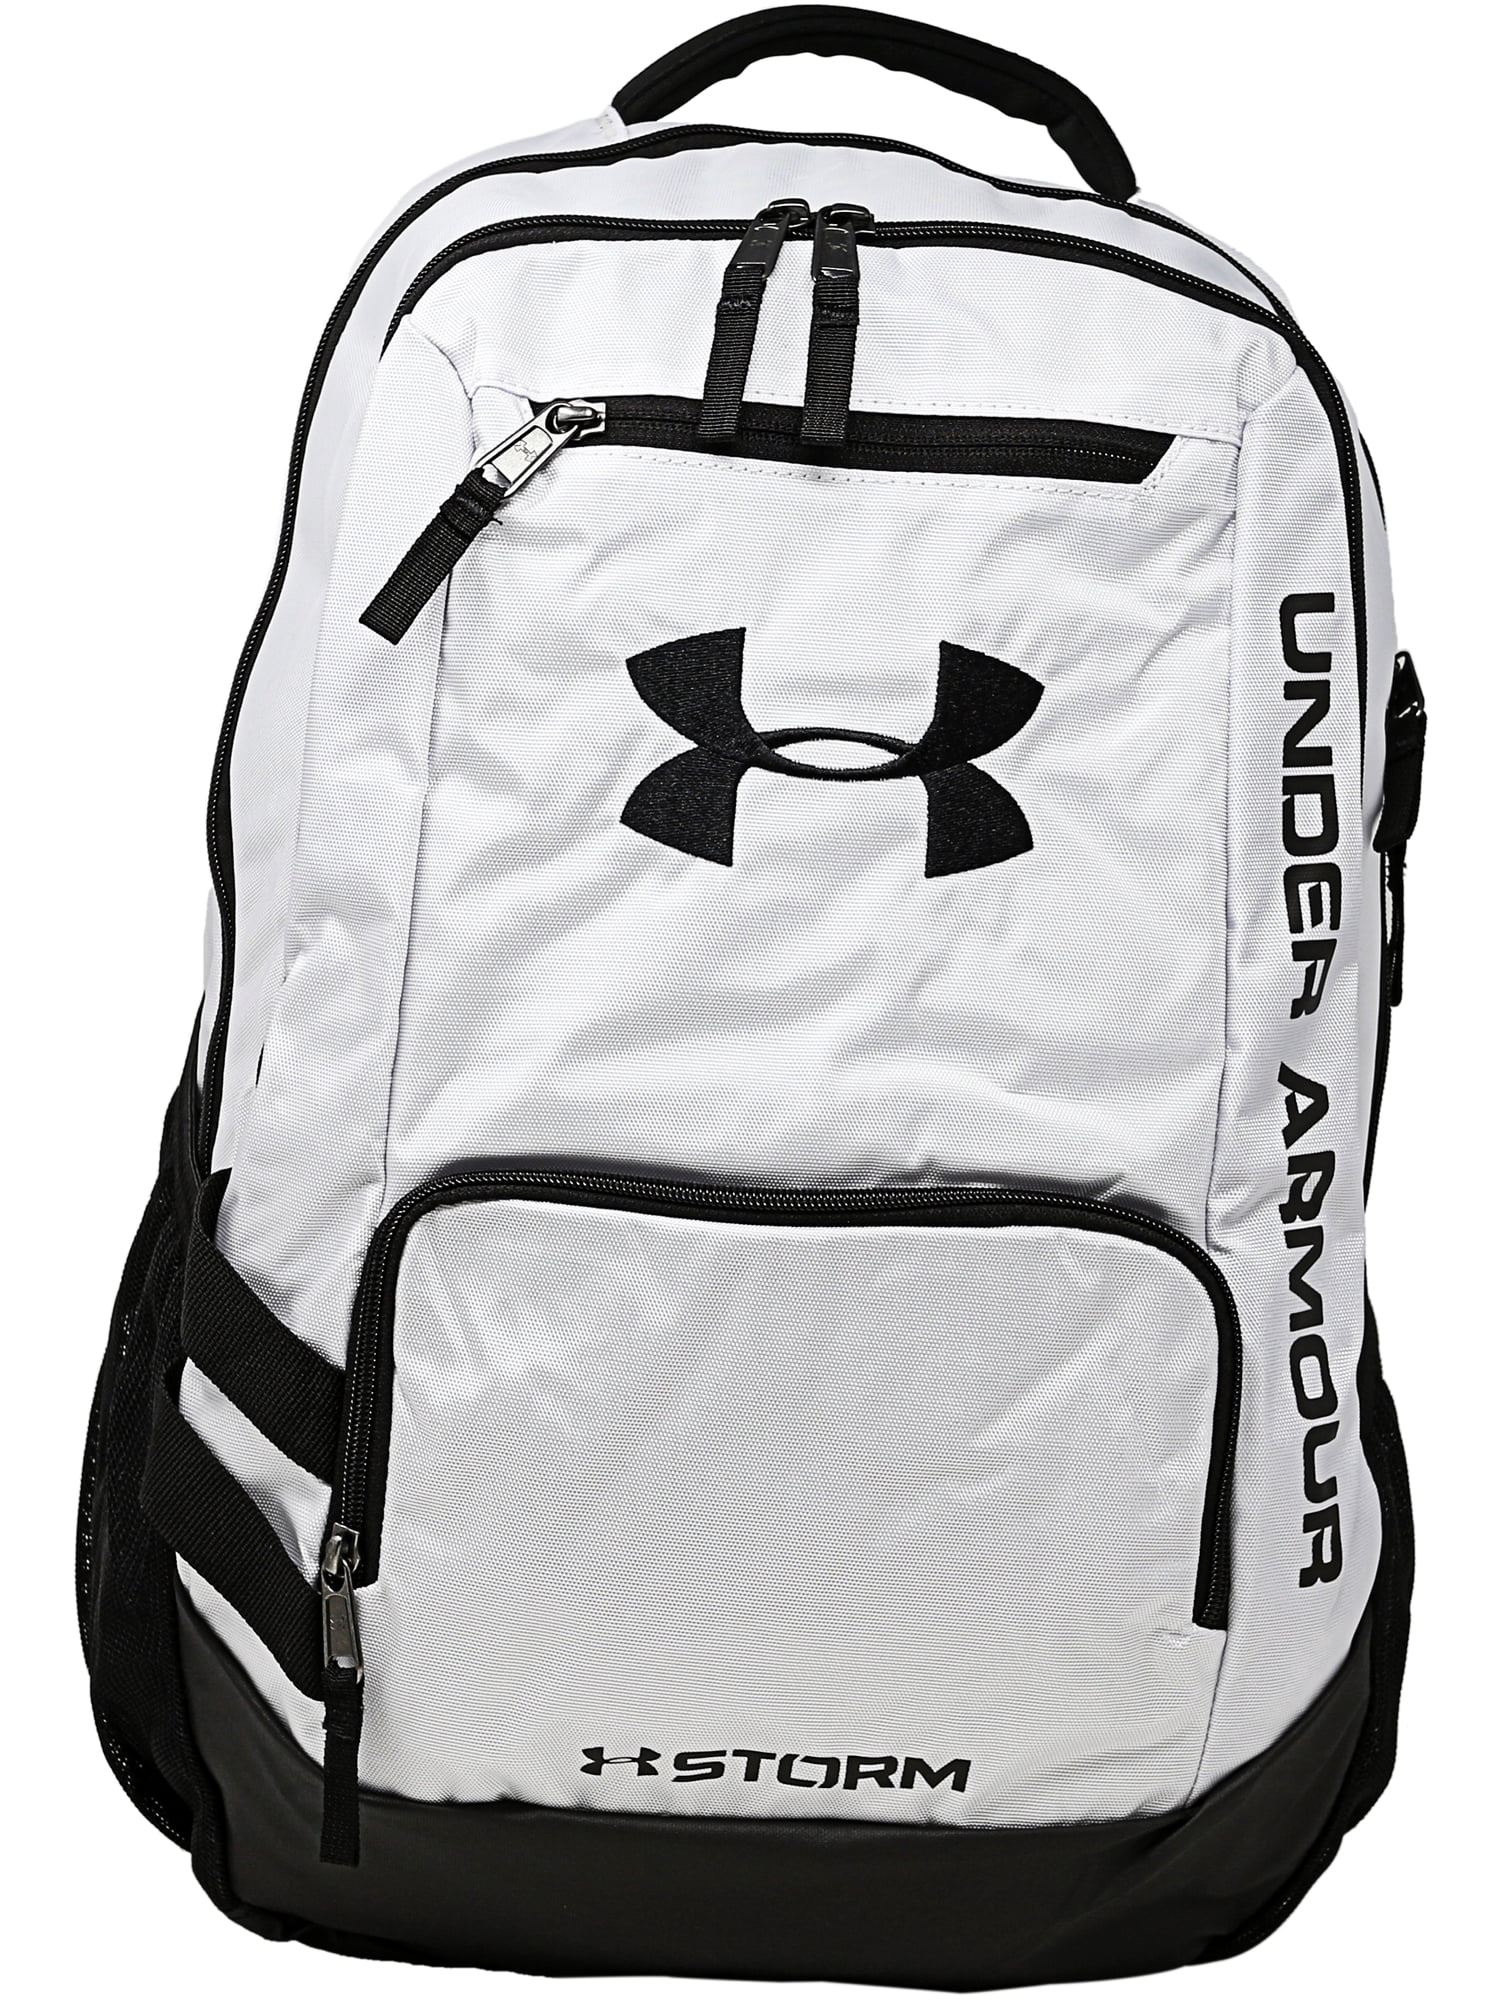 e7db77b00e12 Under Armour - Team Hustle Polyester Backpack - Black - Walmart.com